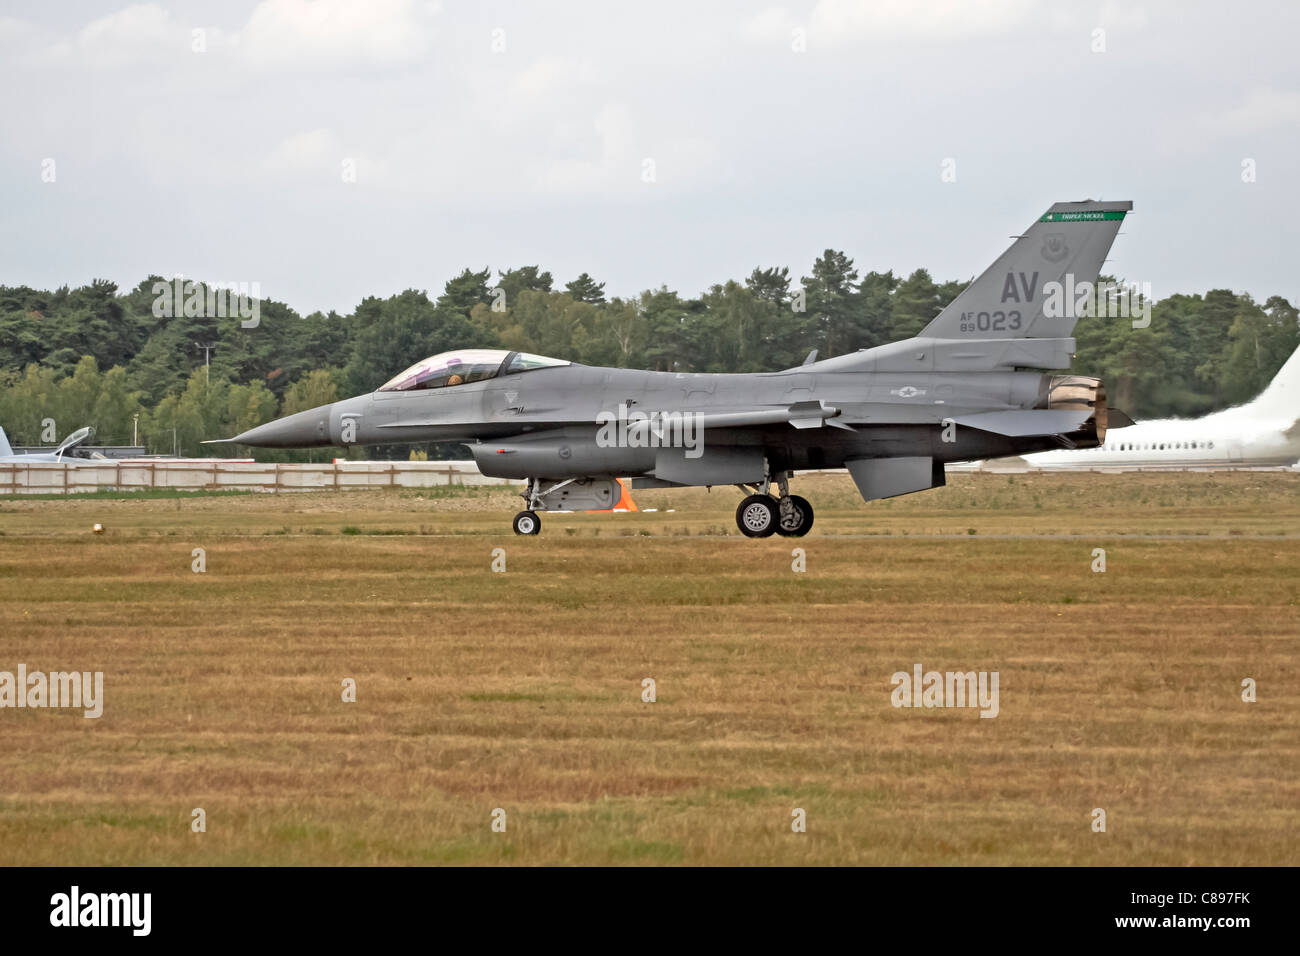 An F-16 fighting falcon from the USAF AF90023 Triple Nickel Aviano takes off at the Farnborough International trade - Stock Image